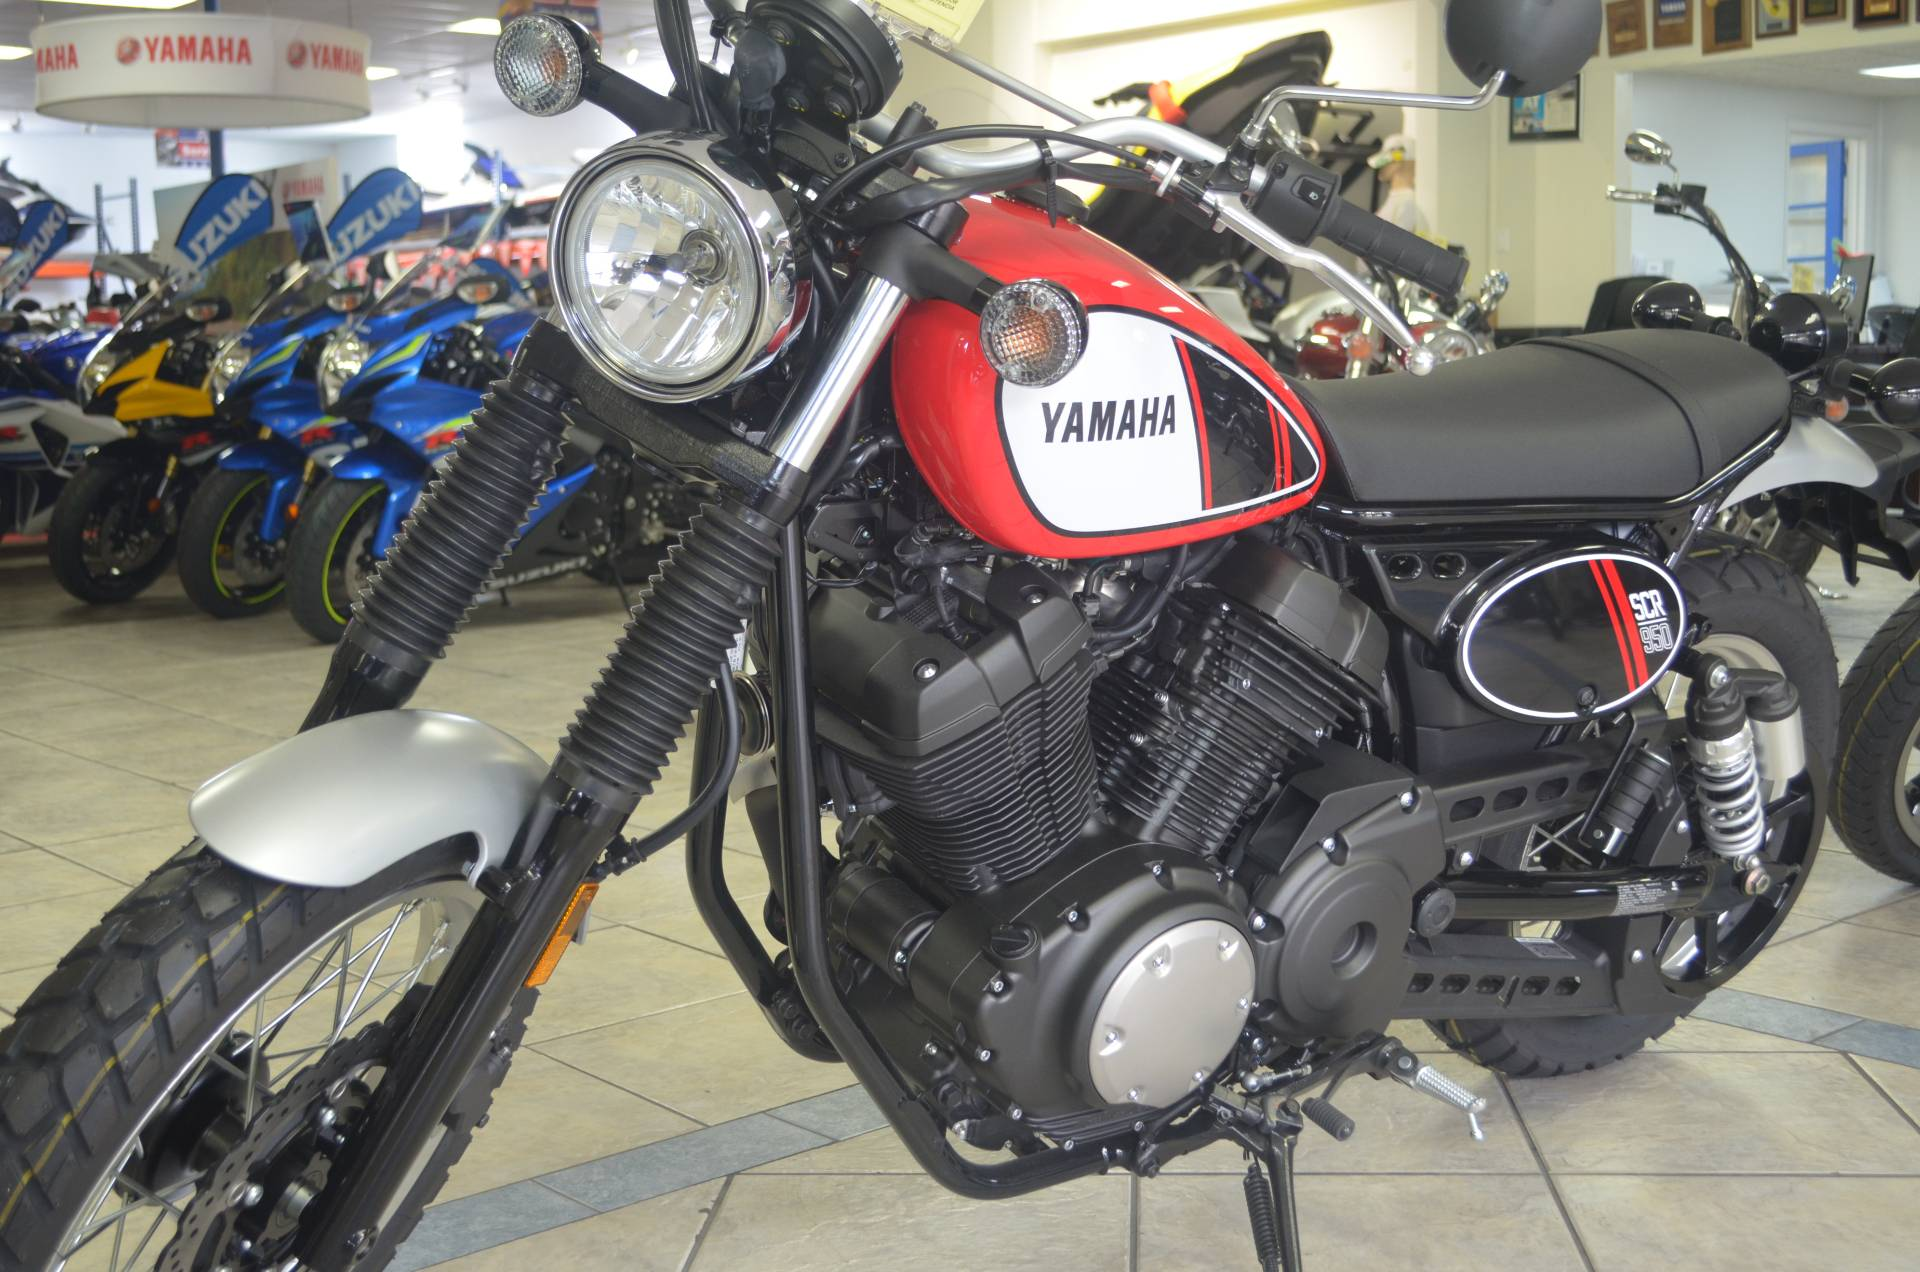 2017 Yamaha SCR950 in Miami, Florida